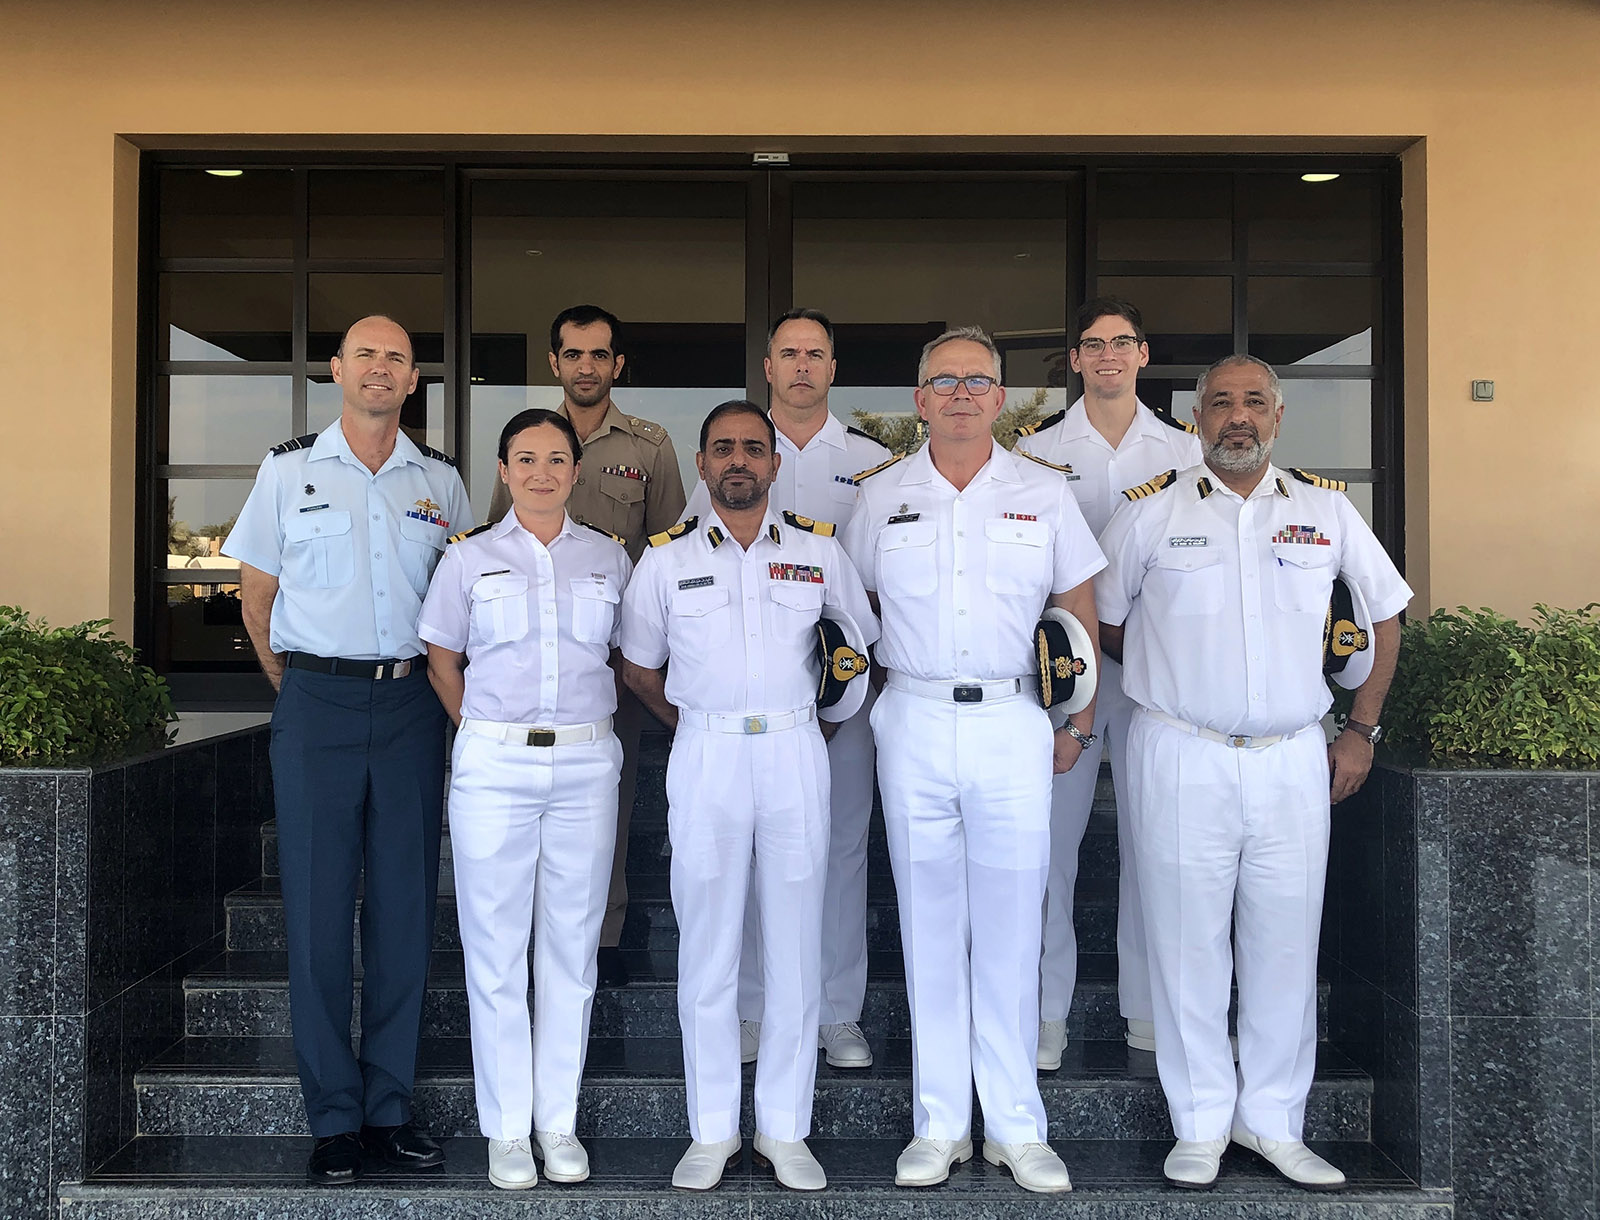 Commodore Garnier and supporting members of the Canada-led CTF 150 Task Force meet with the Royal Oman Navy in Muscat, Oman, on December 30, 2018.